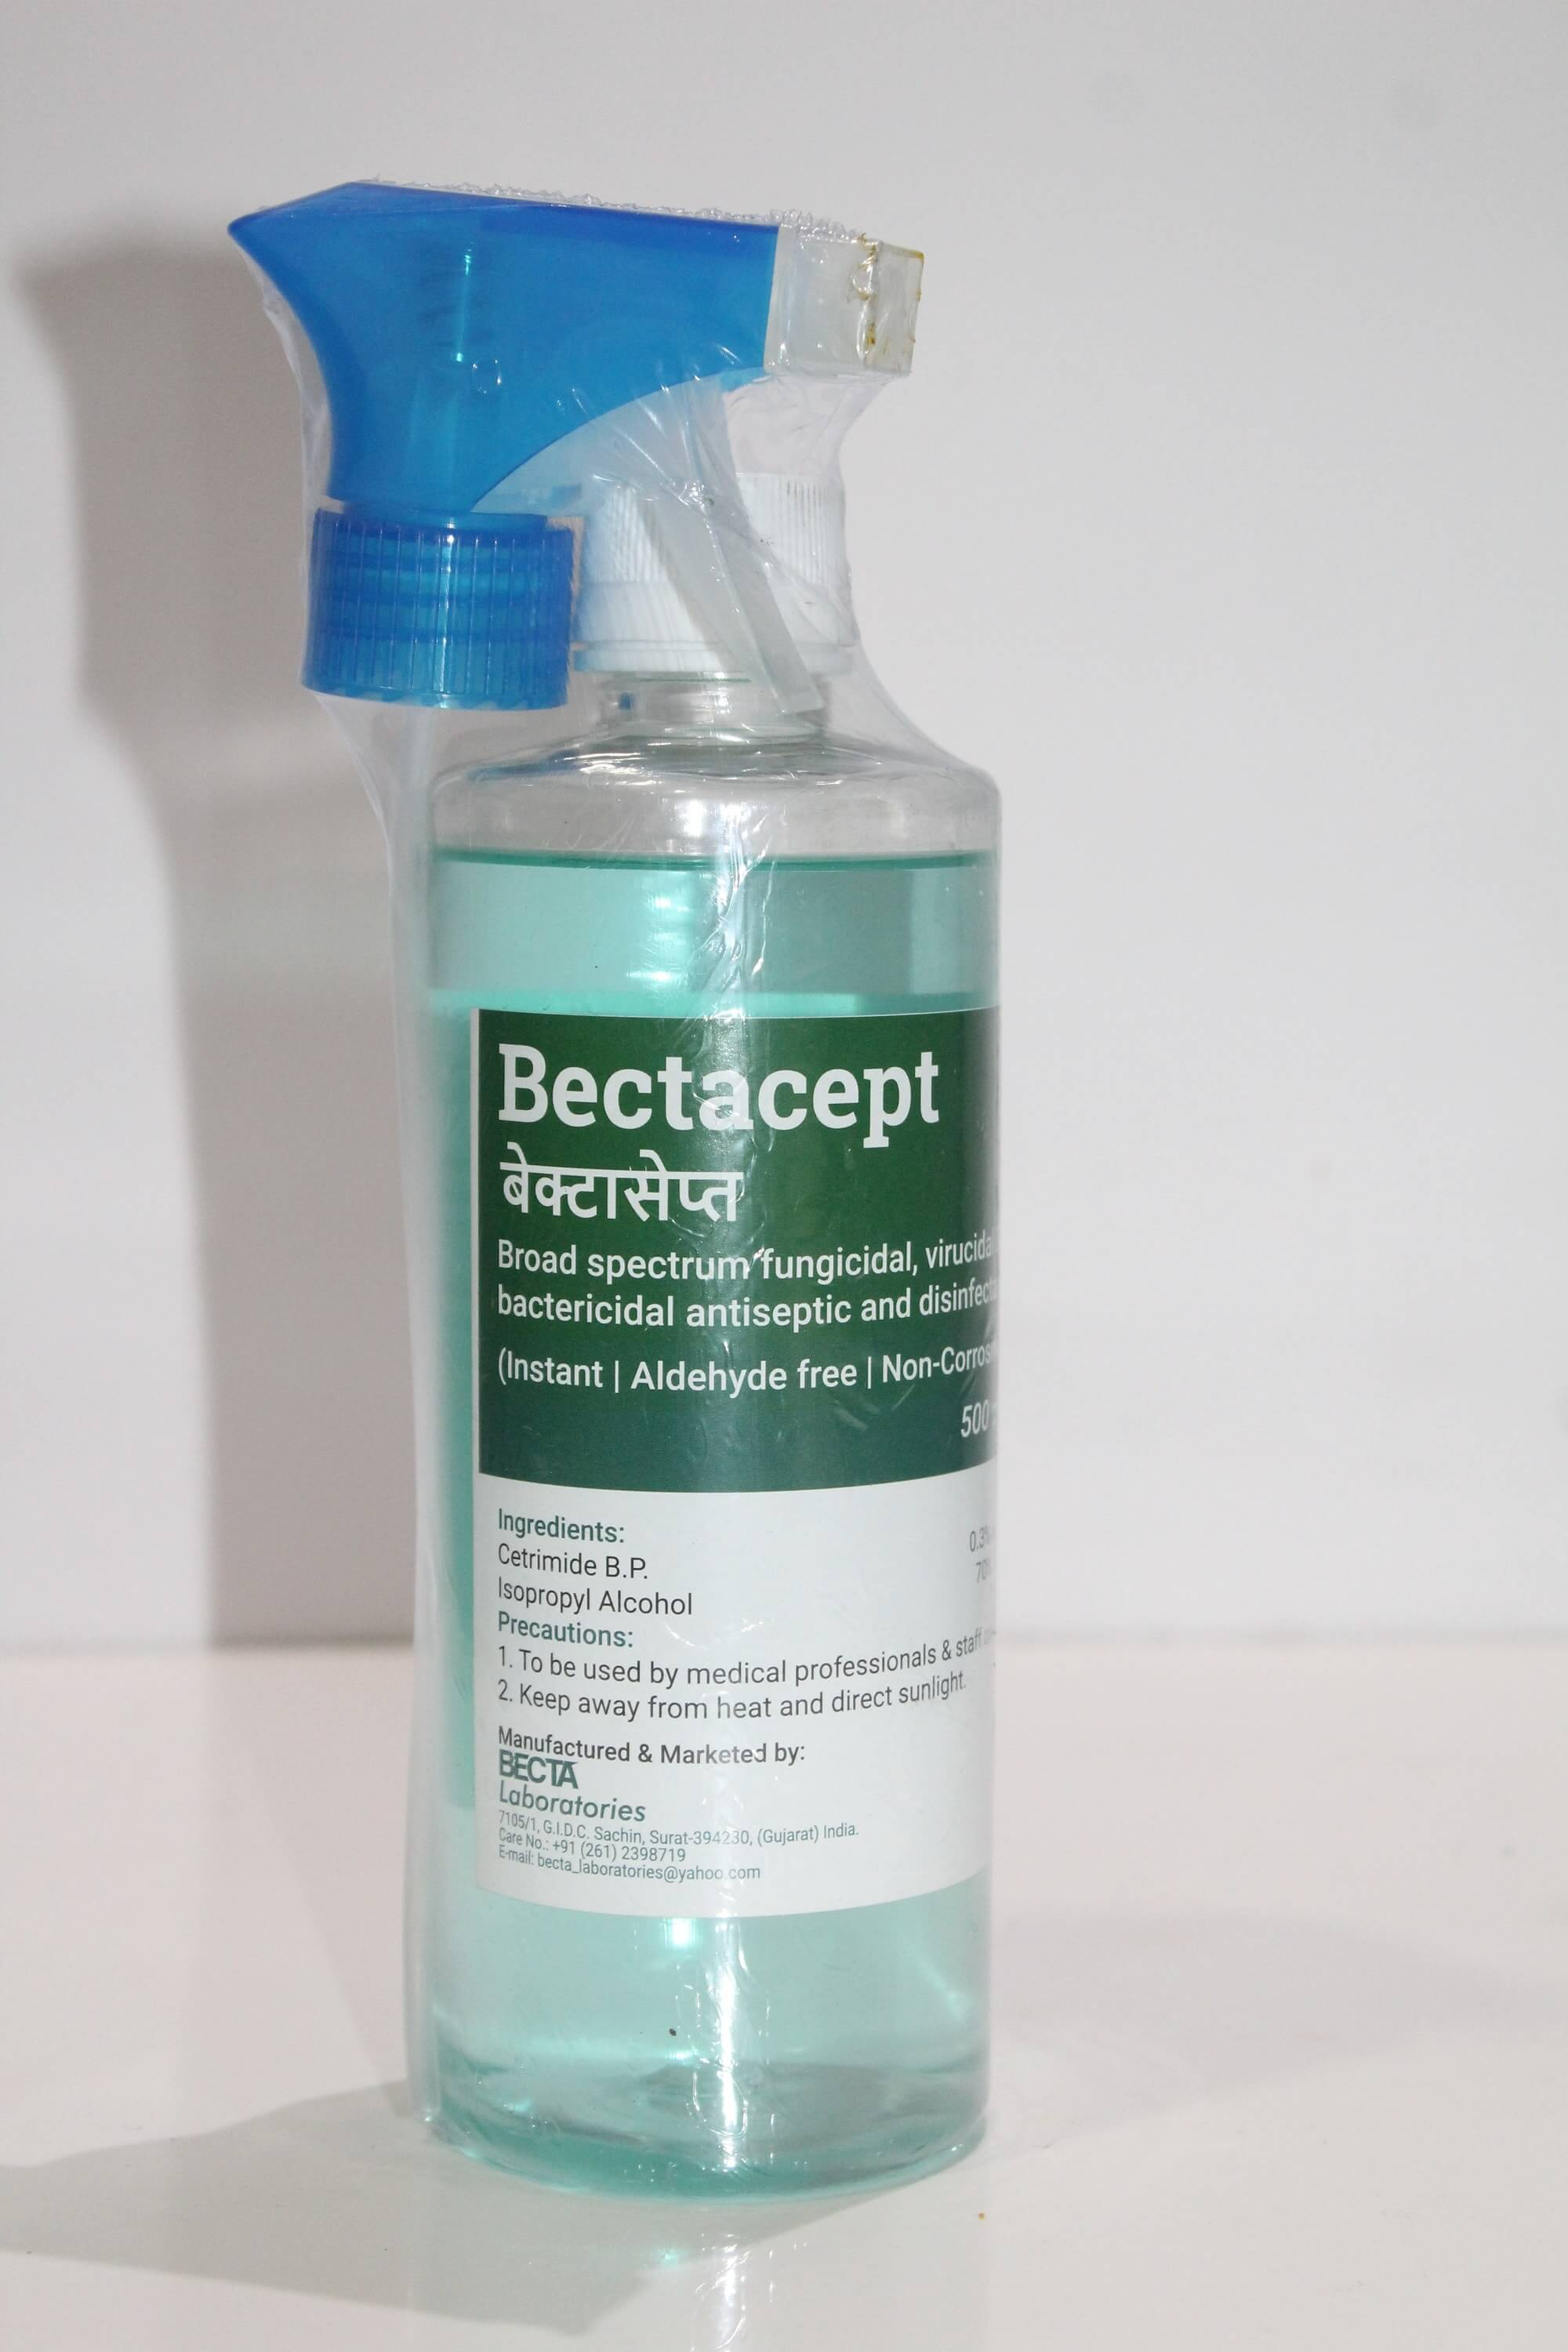 Antiseptic & Disinfectant Solutions Manufacturer, Becta